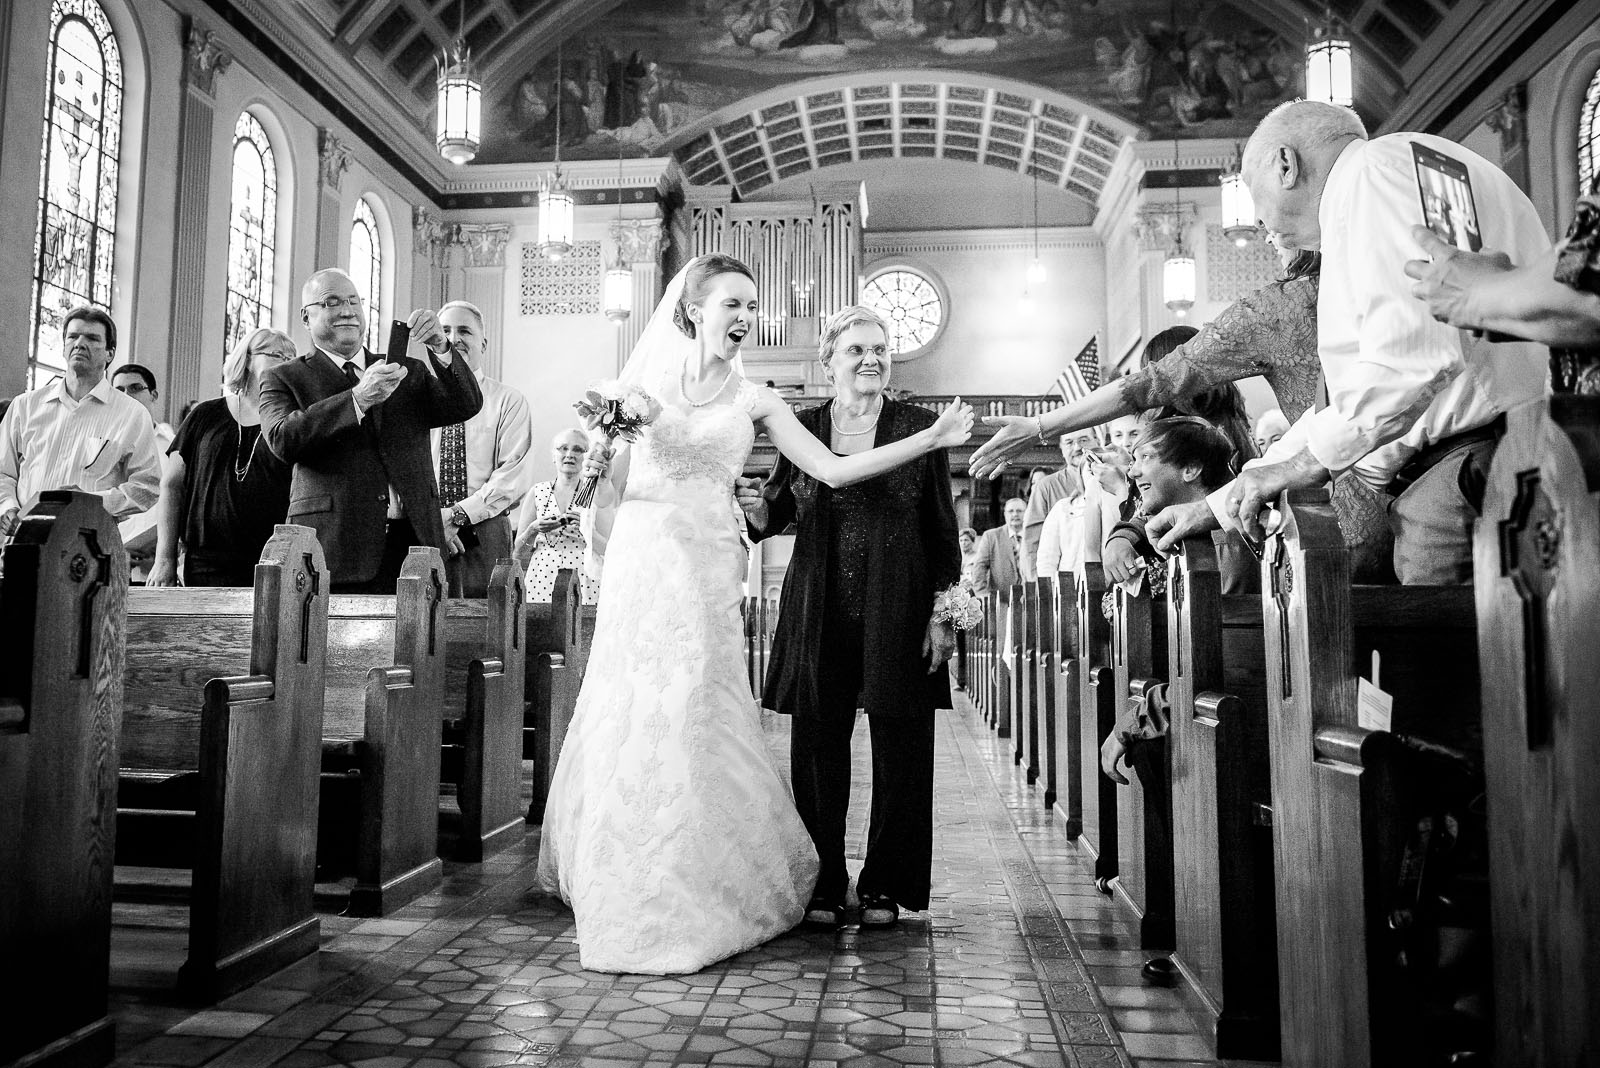 Eric_and_Christy_Photography_Blog_2016_Best_Wedding_Moments-20